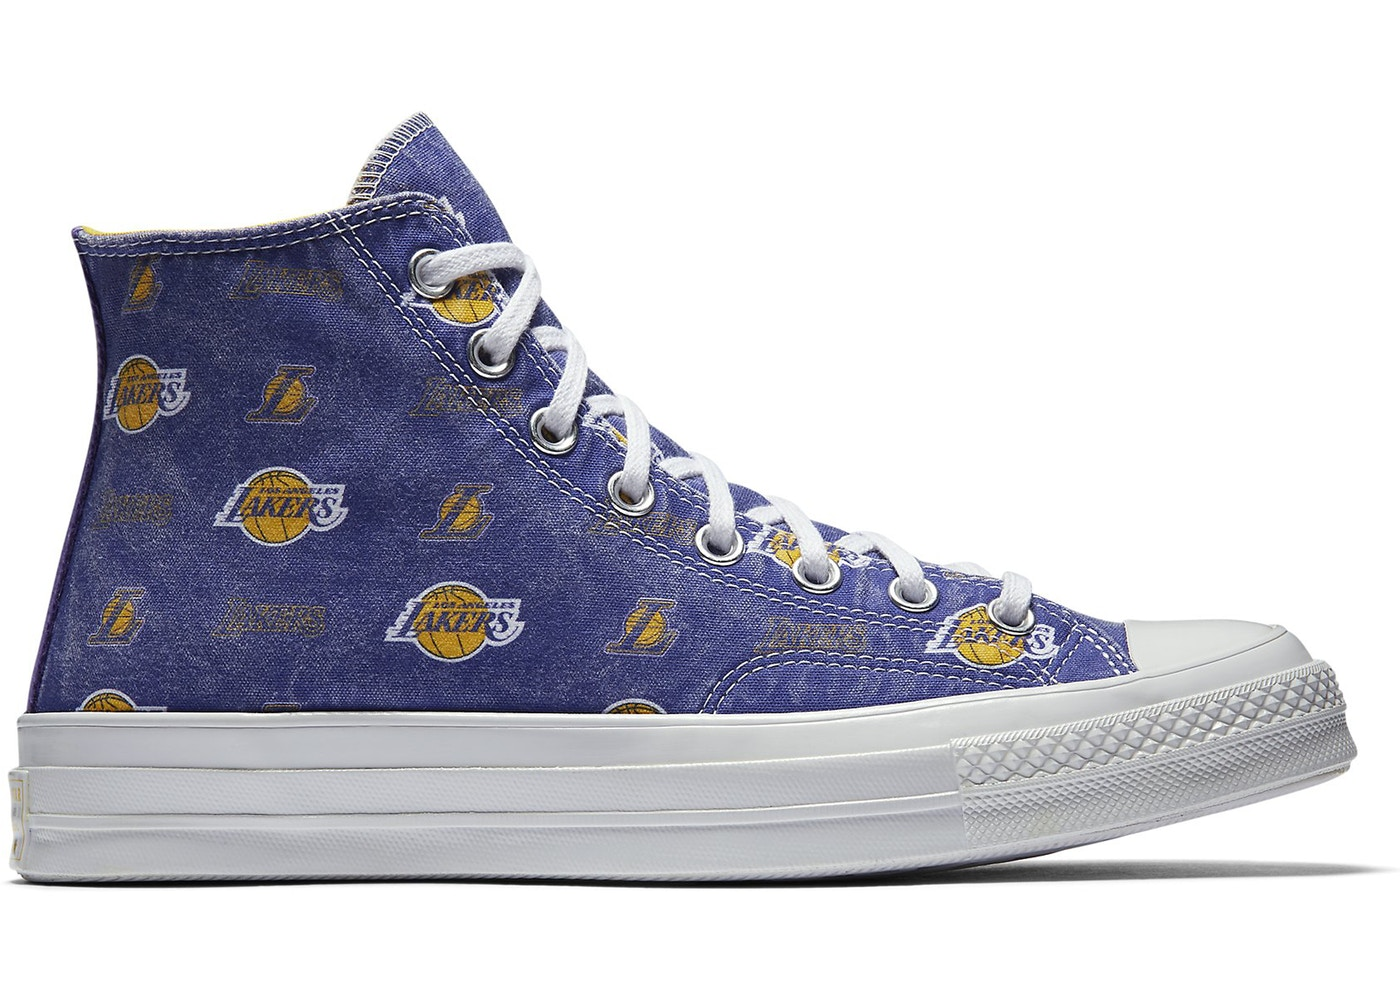 Converse Chuck Taylor All-Star 70s Hi Los Angeles Lakers (Franchise)